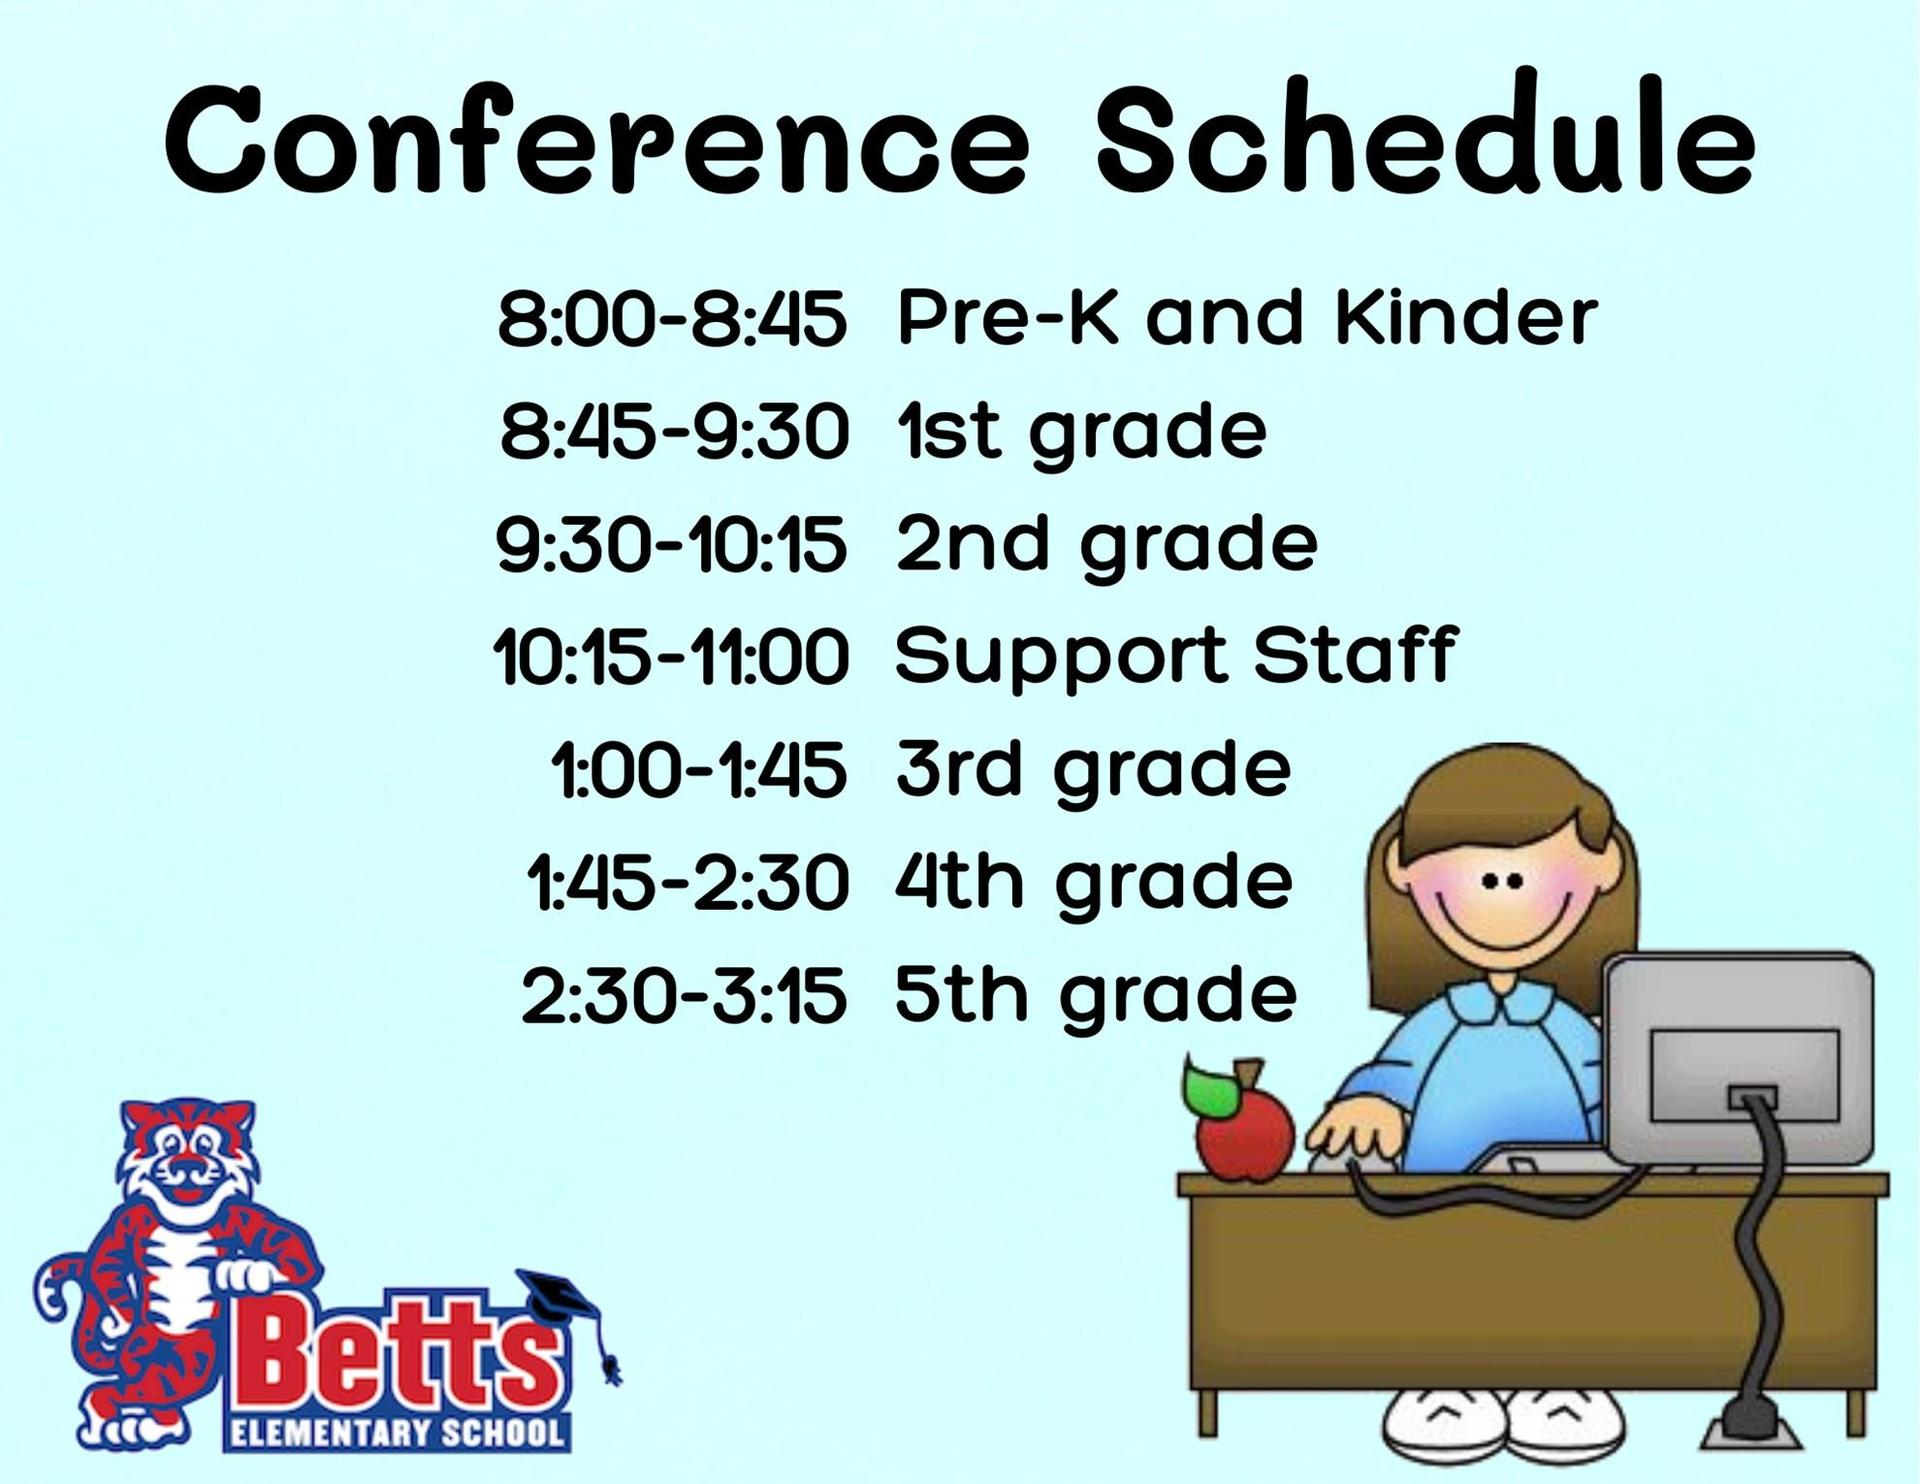 Image of Conference Schedule poster